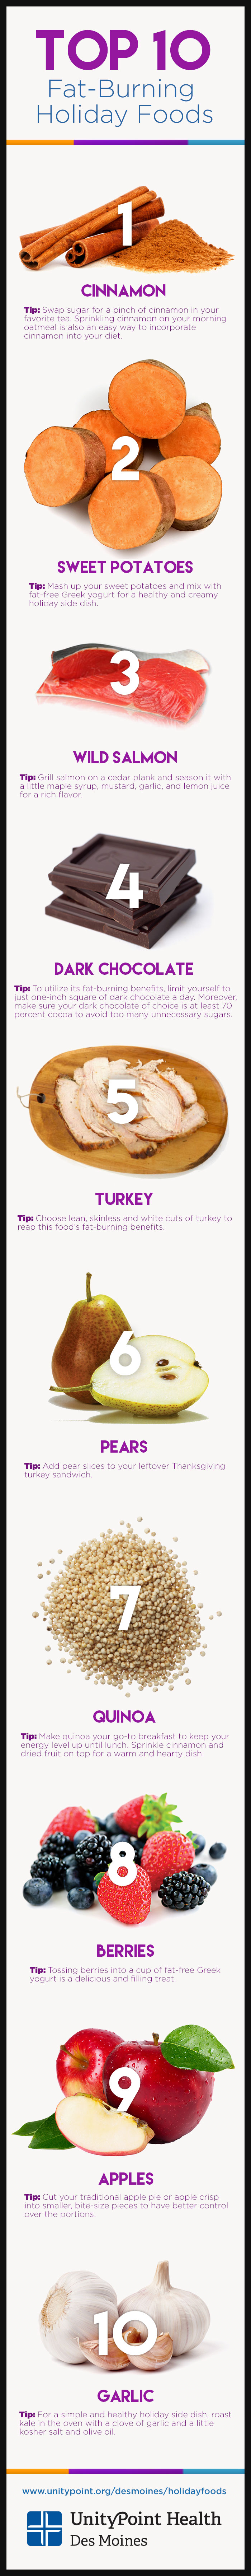 Avoid Gaining Holiday Weight With These 10 Fat-Burning Foods Infographic